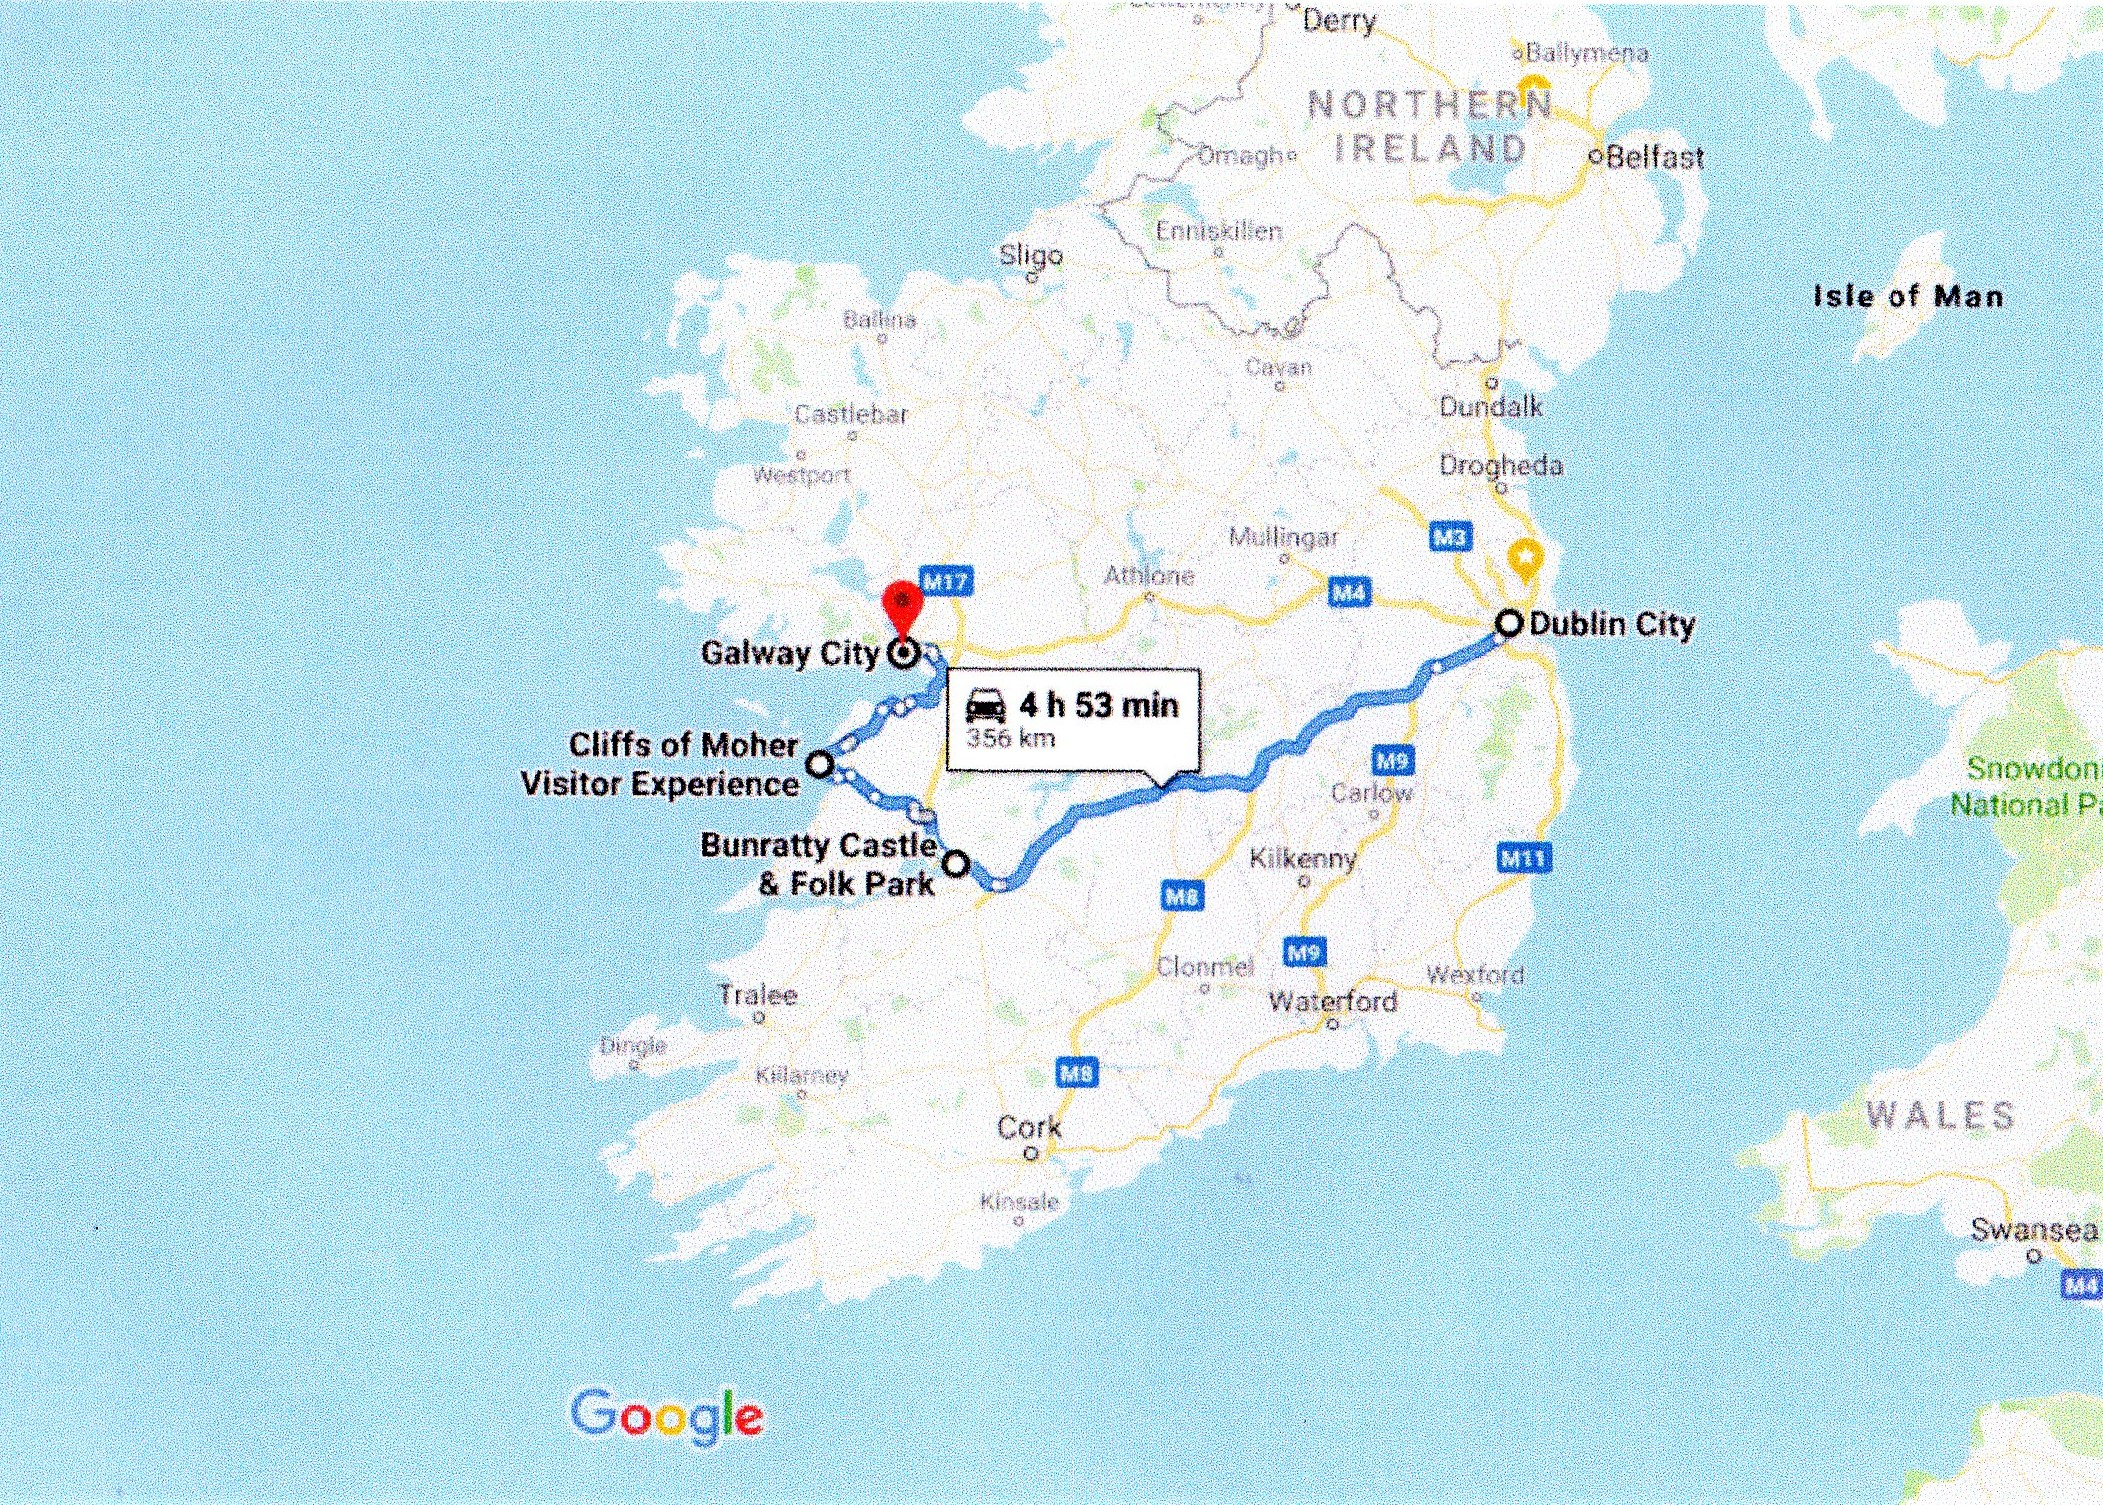 Google route map dublin to galway via the cliffs of moher